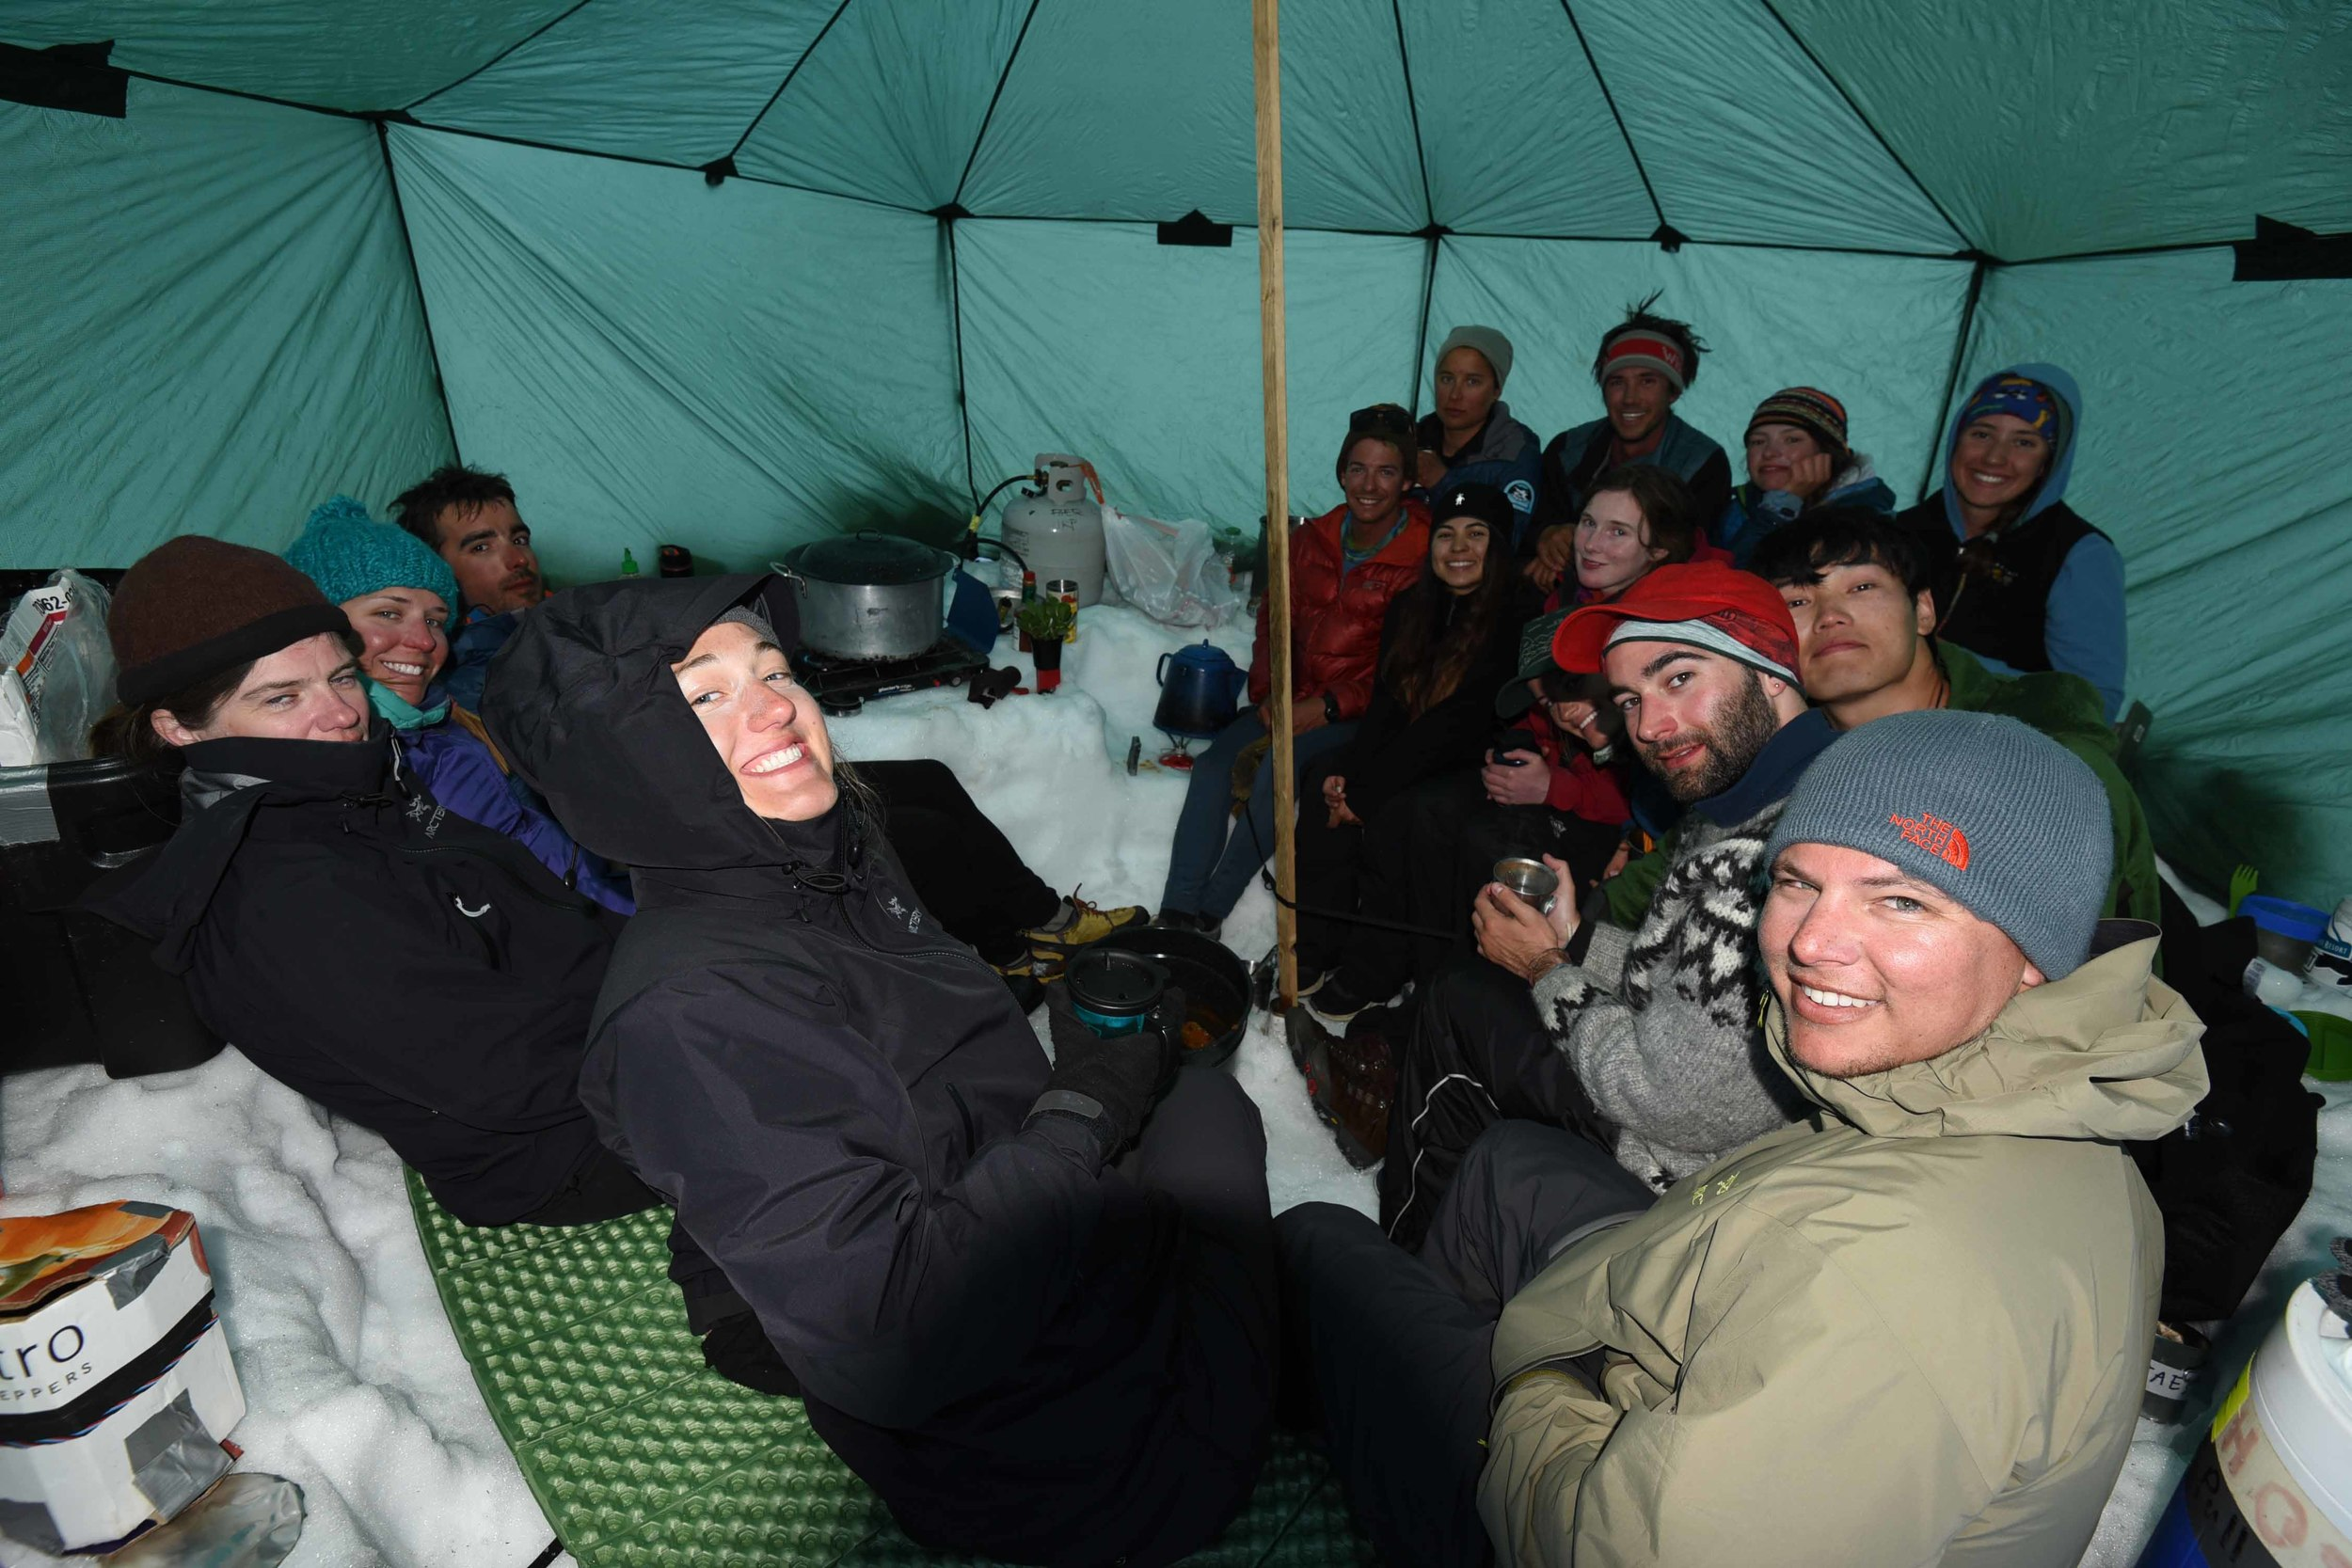 Louise enjoying a hard-won rest with fellow JIRPers at the Norris Cache, halfway through the ski traverse from Camp 17 to Camp 10. Photo courtesy PBJ Photography.